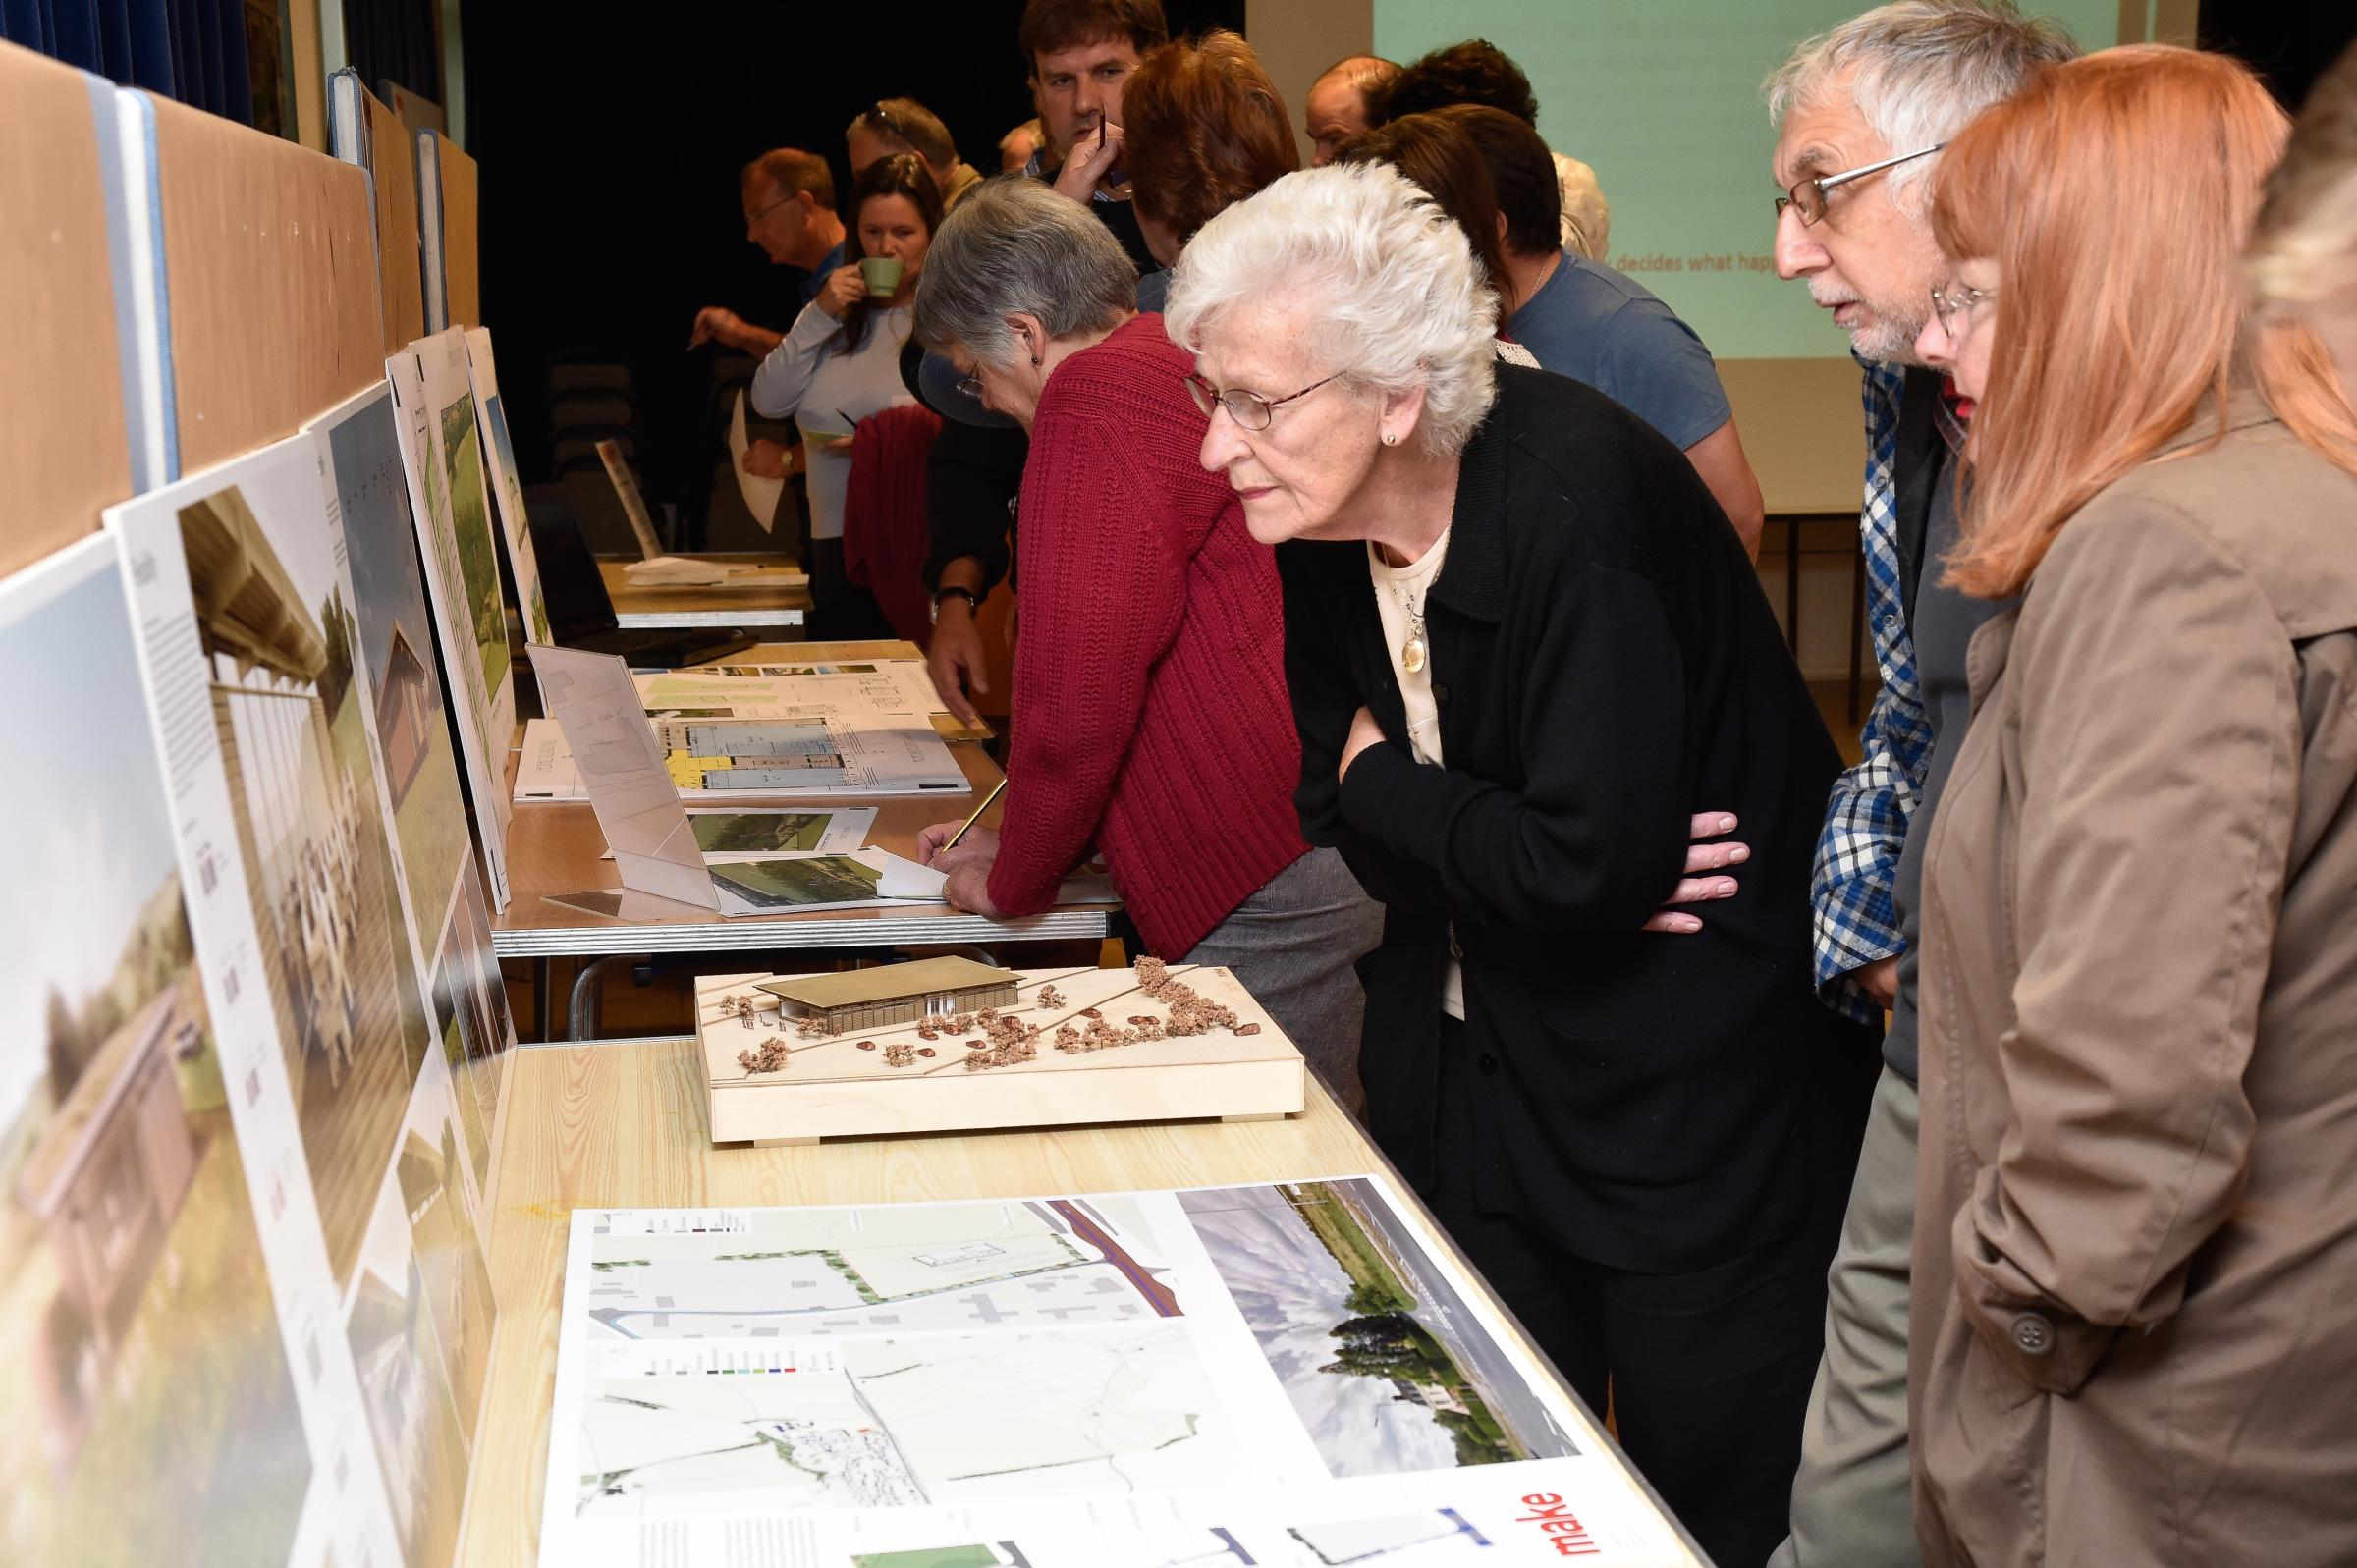 Cherhill Village Hall opened its doors on Saturday for all to see the proposed new plans for a new hall in the village. Photo from 2015, when plans were first unveiled. Photo: Paul Stallard PS114/04.